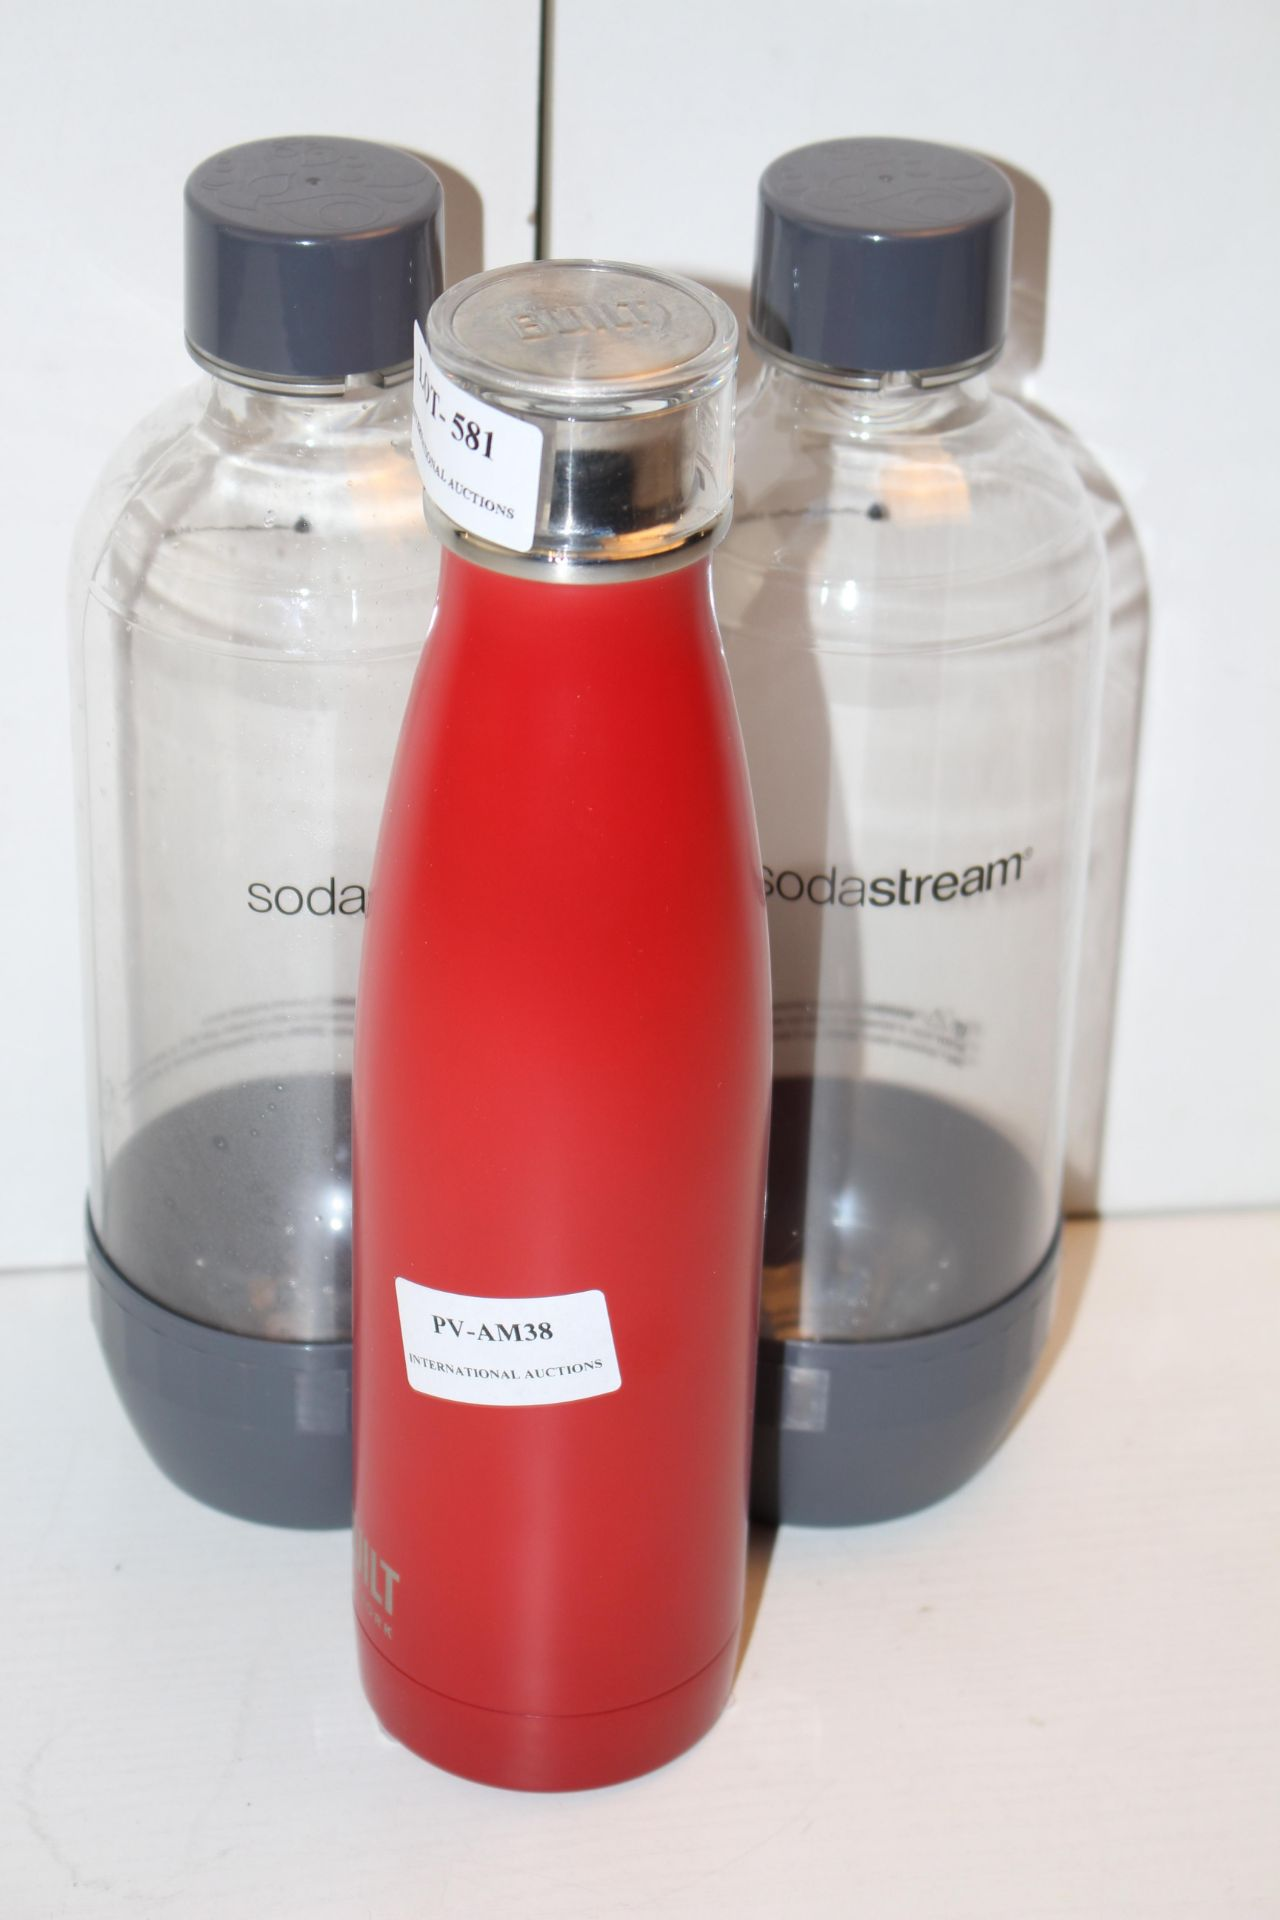 X3 FLASKS, PLEASE SEE IMAGECondition ReportAppraisal Available on Request- All Items are Unchecked/